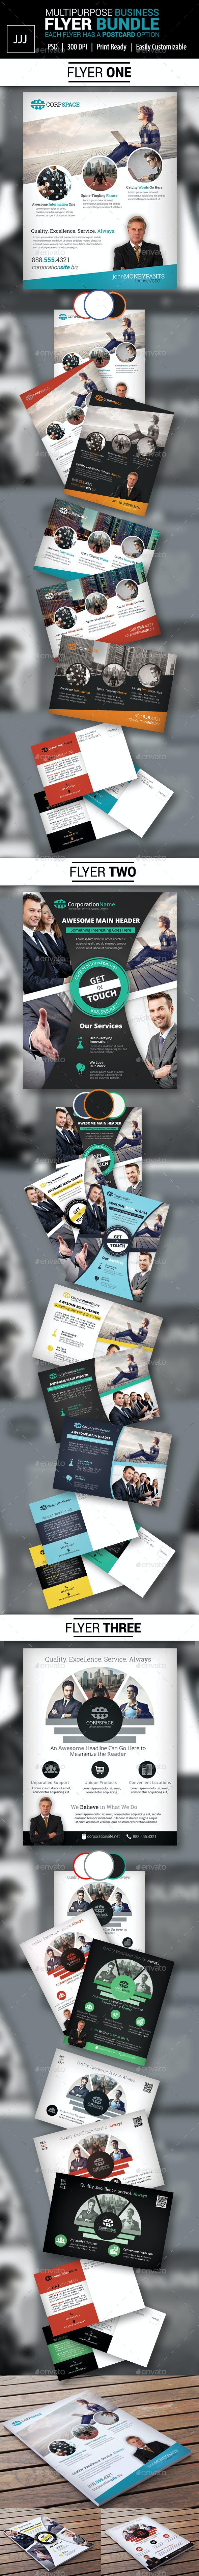 Business Flyer Bundle with Postcard Options - Corporate Flyers